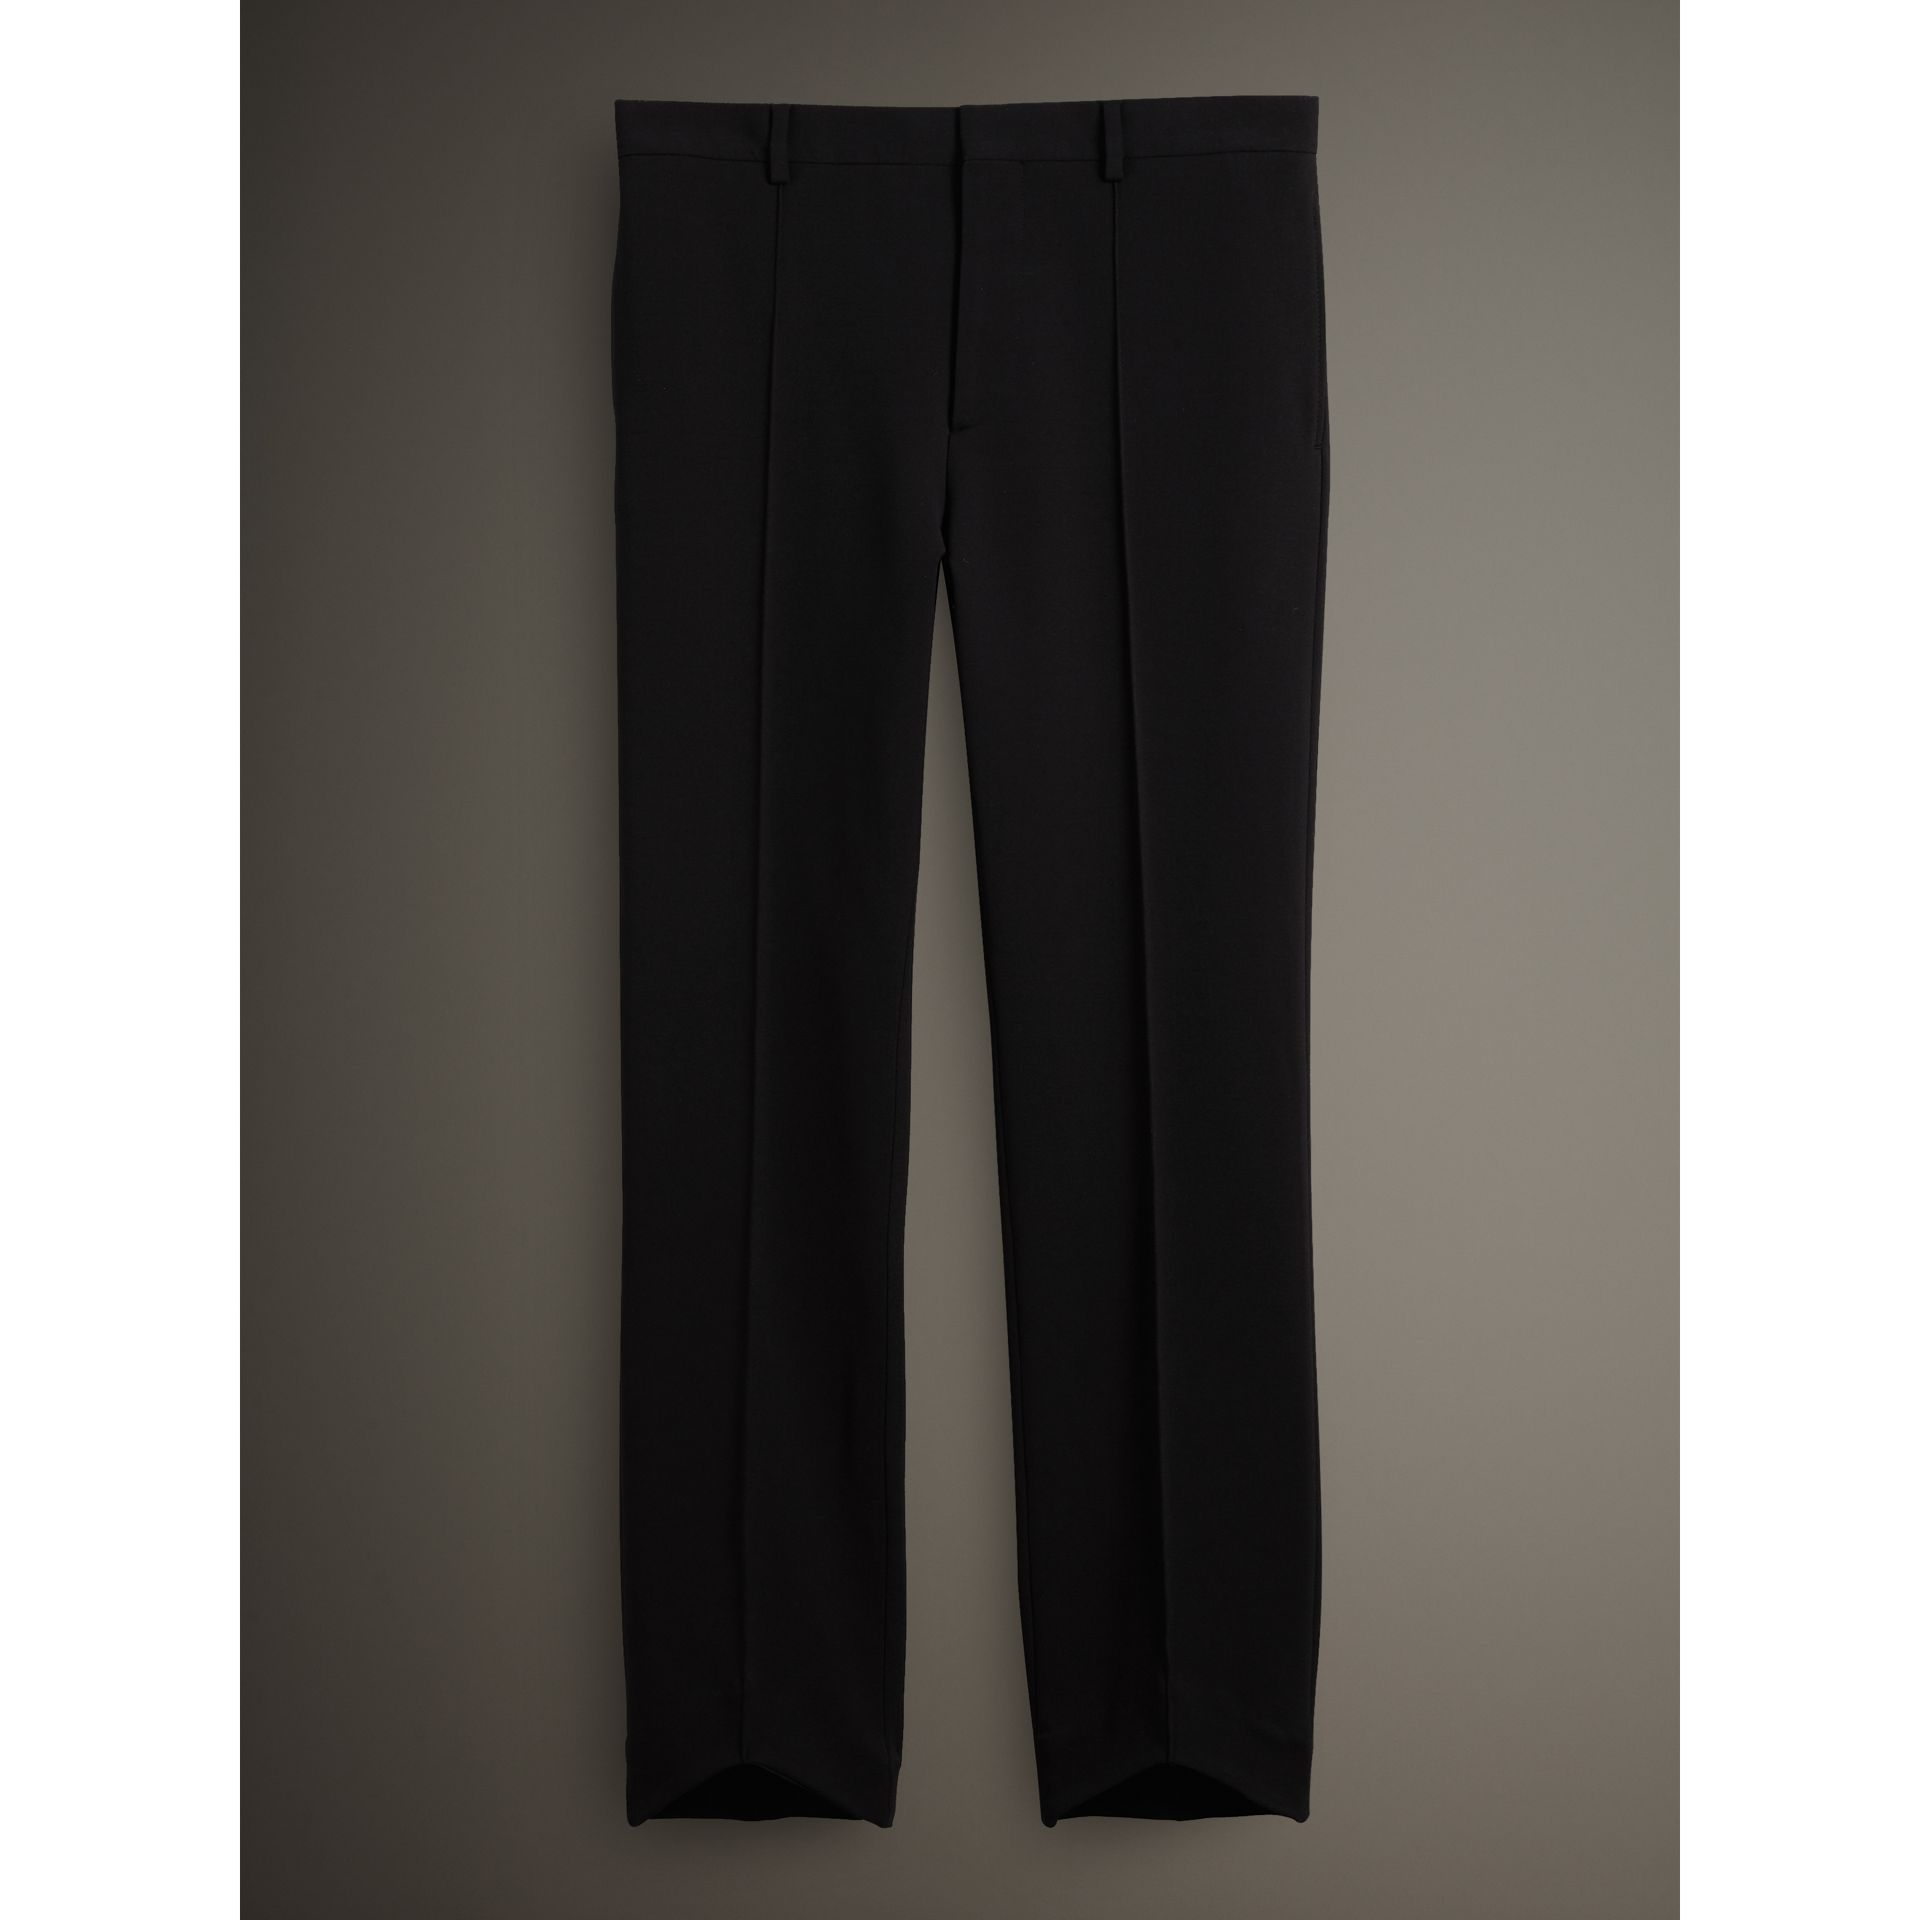 Burberry Black Jersey Cropped Tailored Riding Trousers